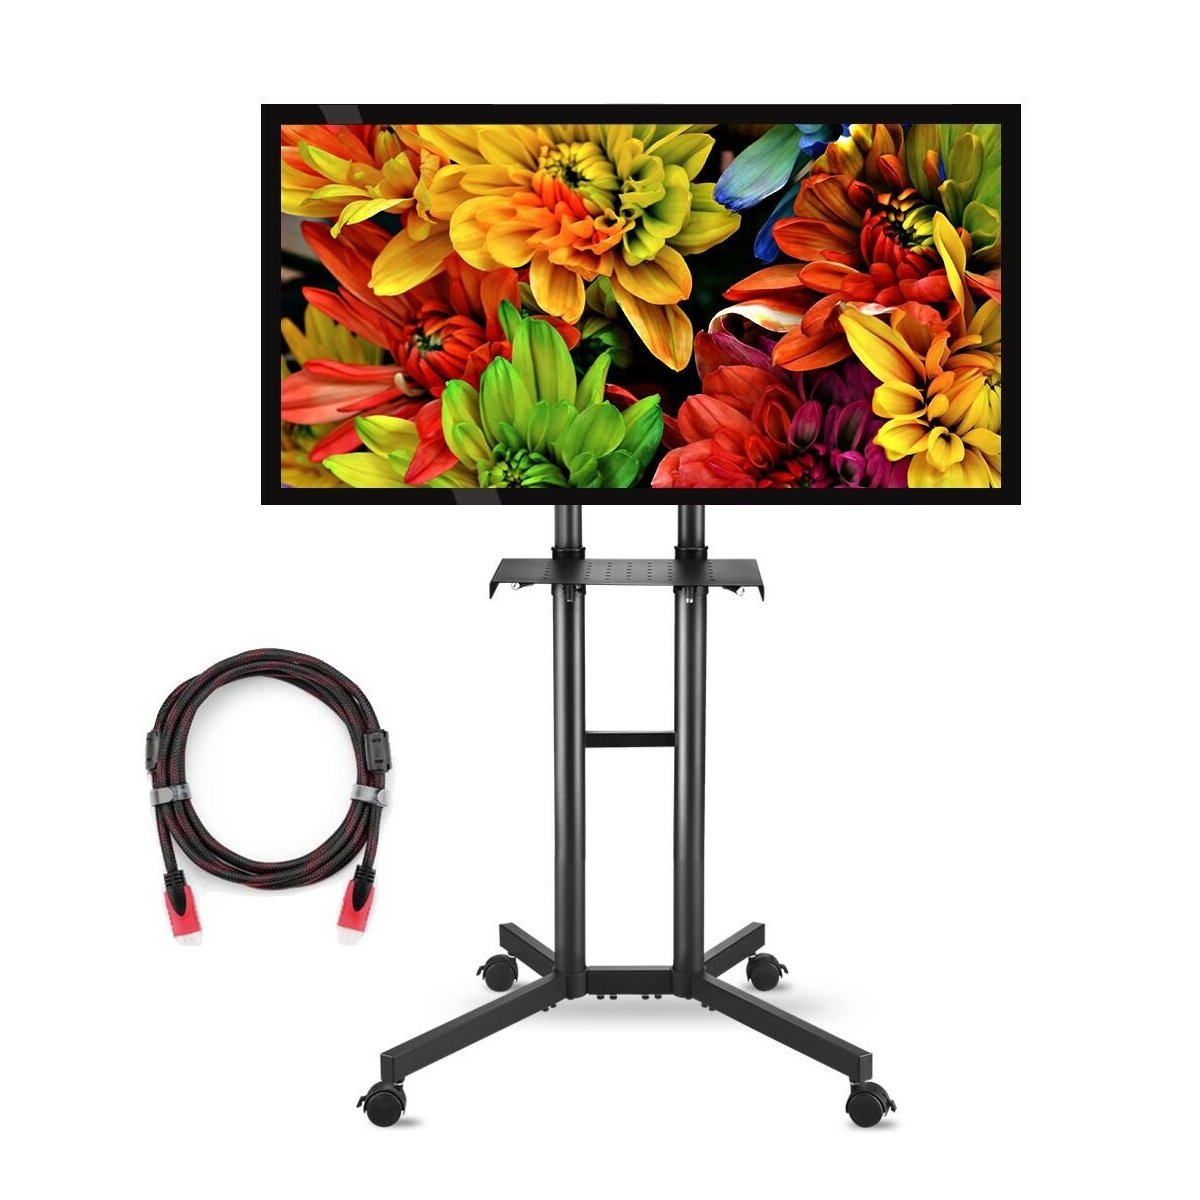 Suptek Universal TV Cart For LCD LED Plasma Panel Stand Mount With Wheels Mobile And 1 Adjustable Shelf For 32 to 60 Inch (ML5073-3)